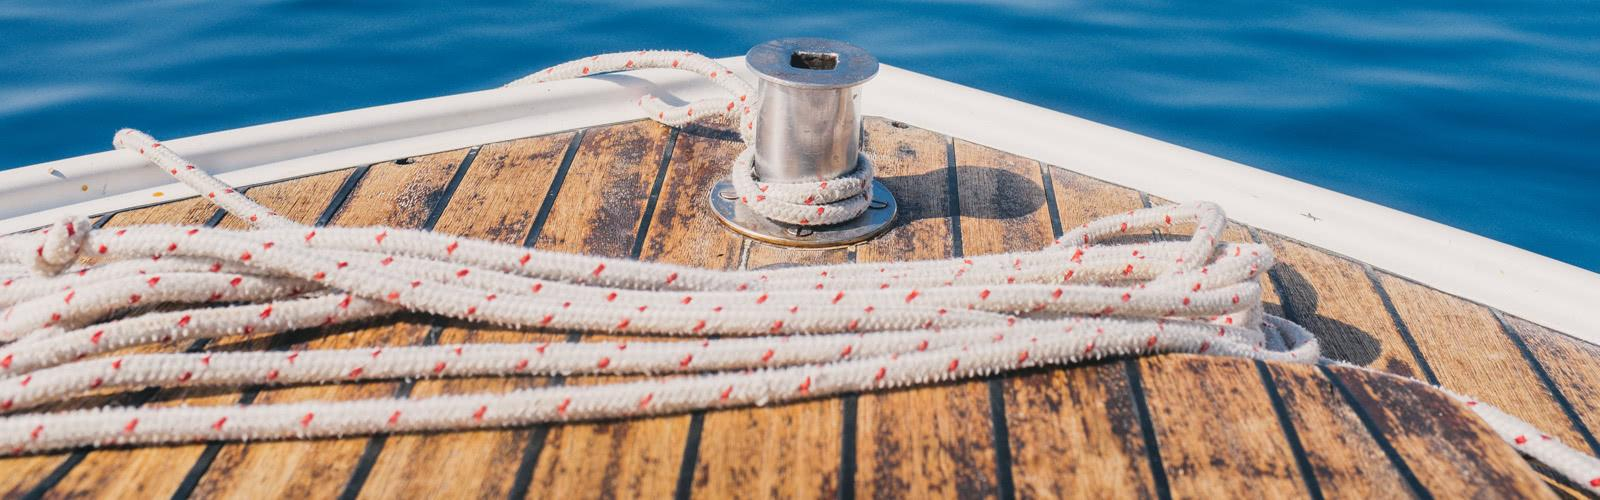 How to find the best yacht rope